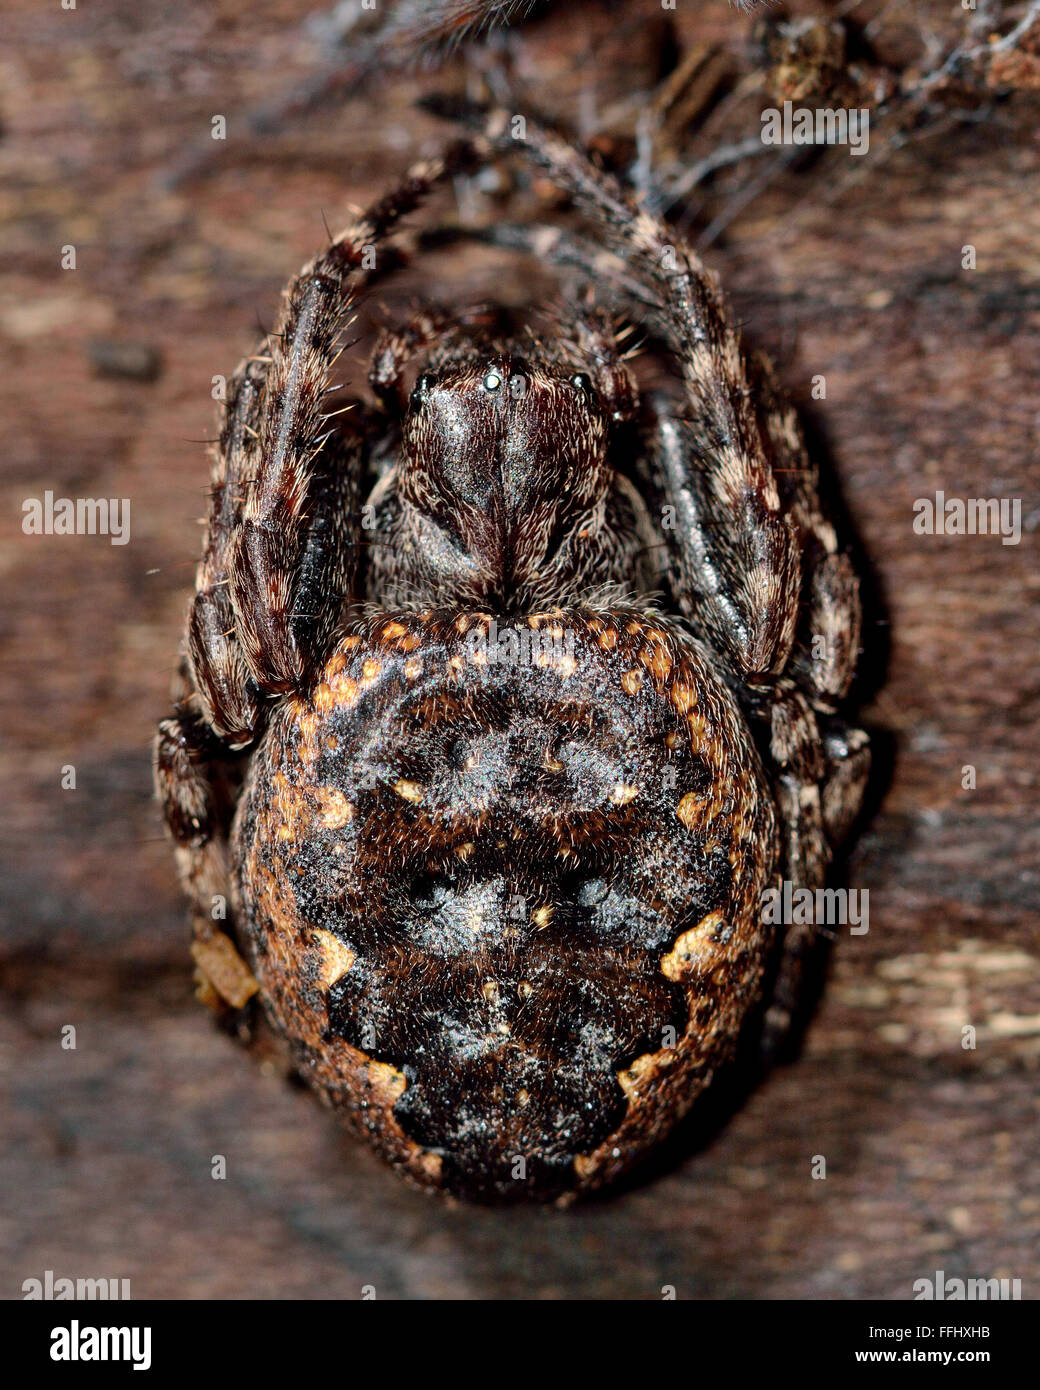 Walnut orb weaver (Nuctenea umbratica) defensive posture. A large and flattened orb-weaving spider in the family - Stock Image